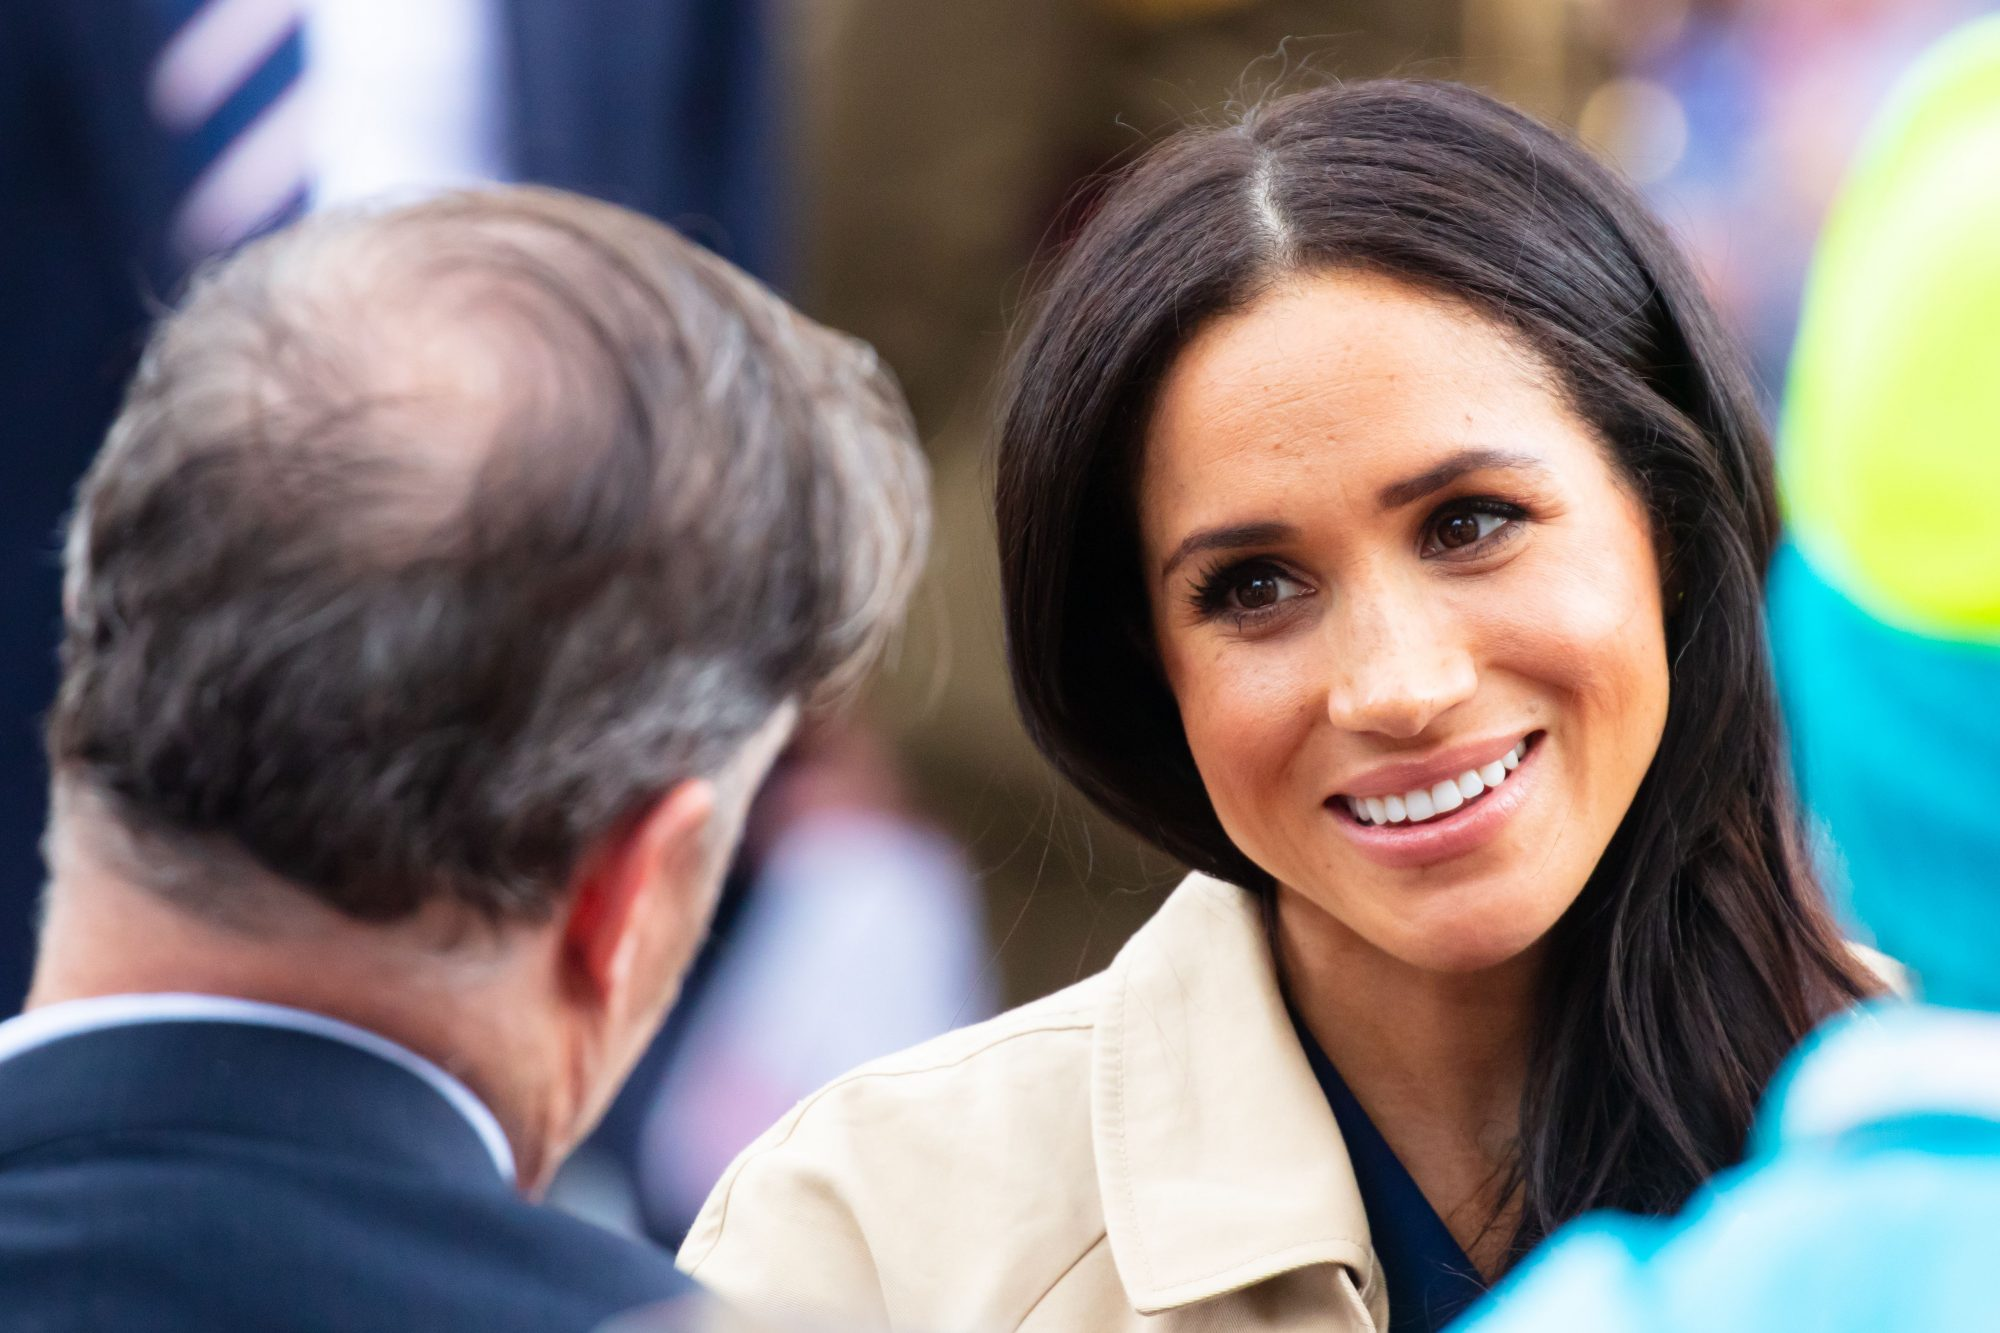 This Is the One Food Meghan Markle Refused to Eat in Australia